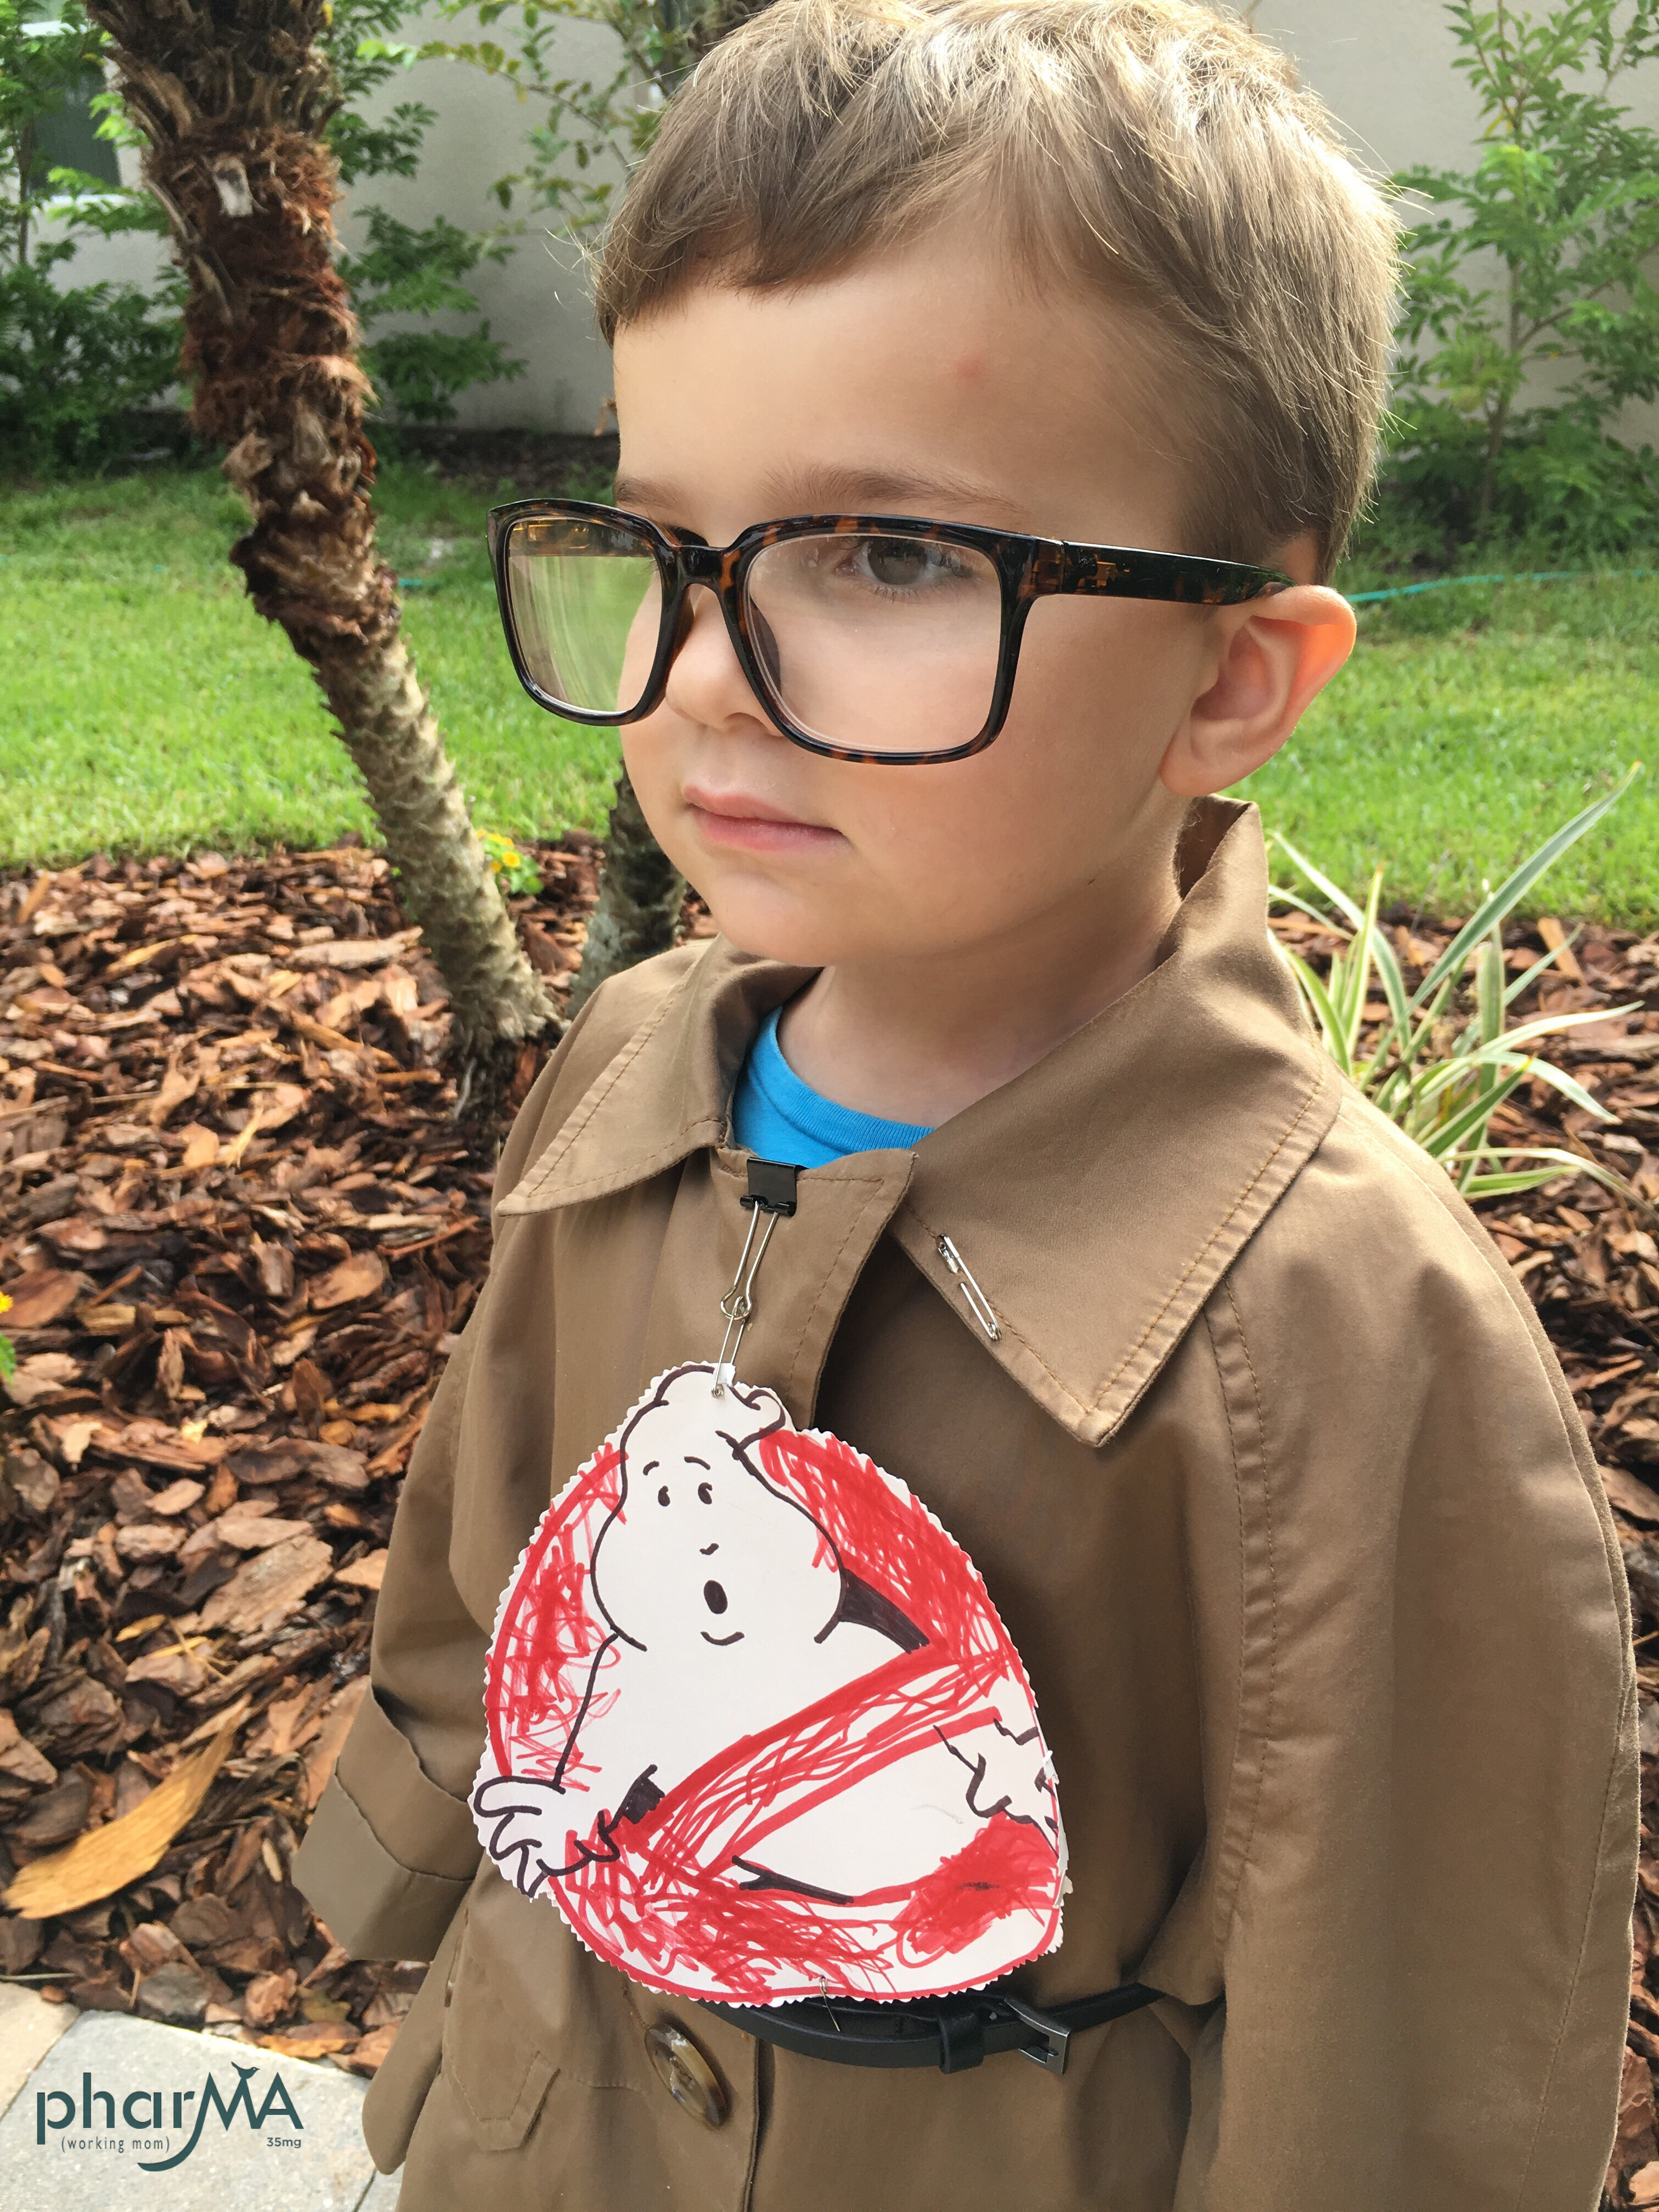 How to Make Ghostbusters Toys, Little Ghostbuster Boy